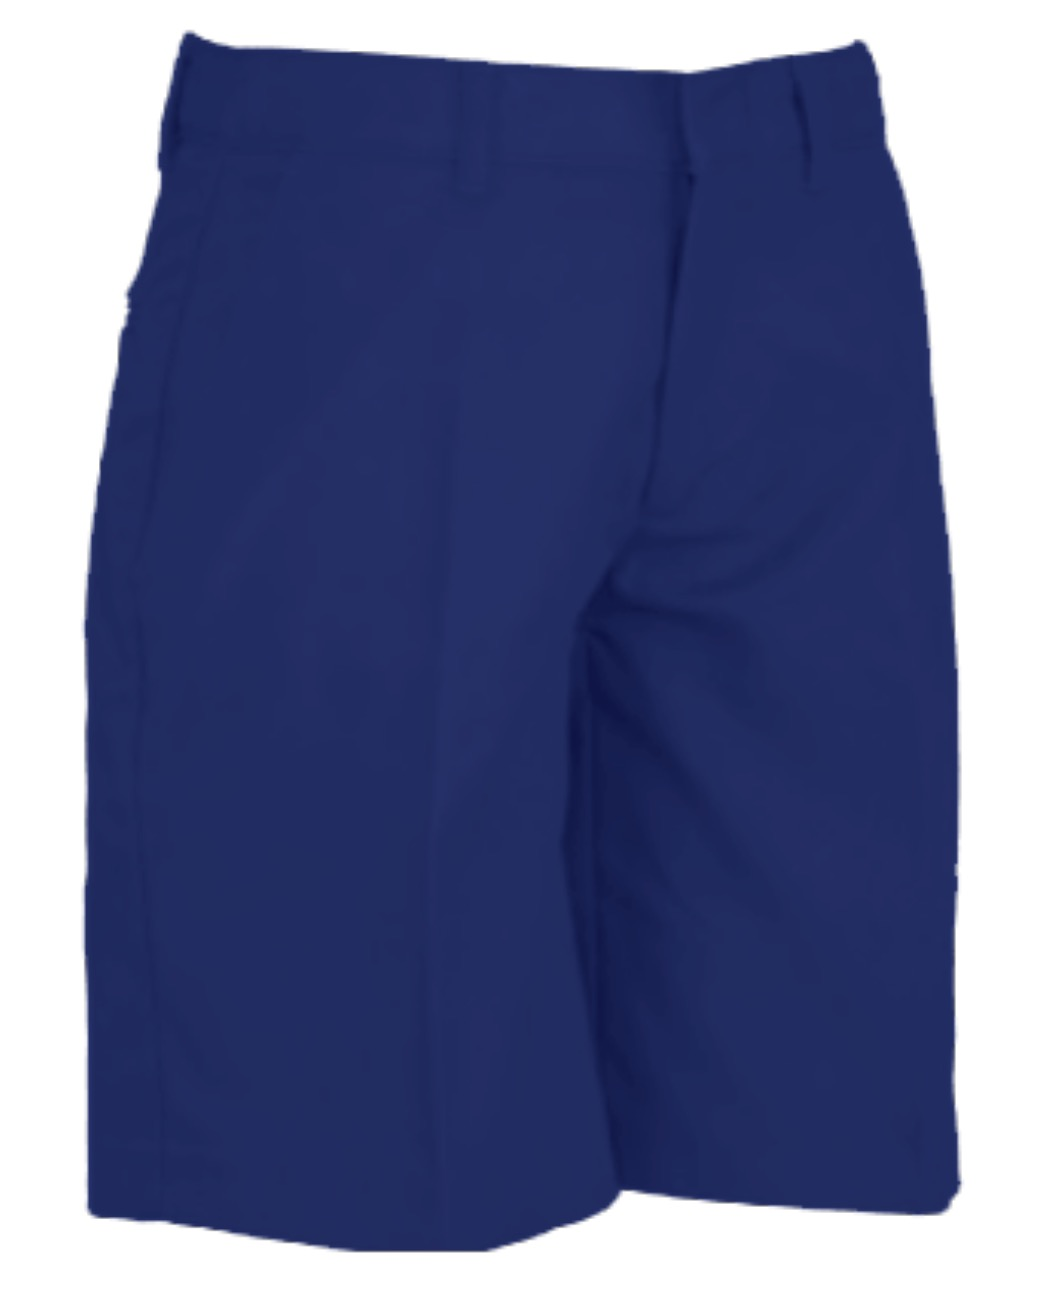 BOYS - VALUE LINE - Boys Short Flat Front